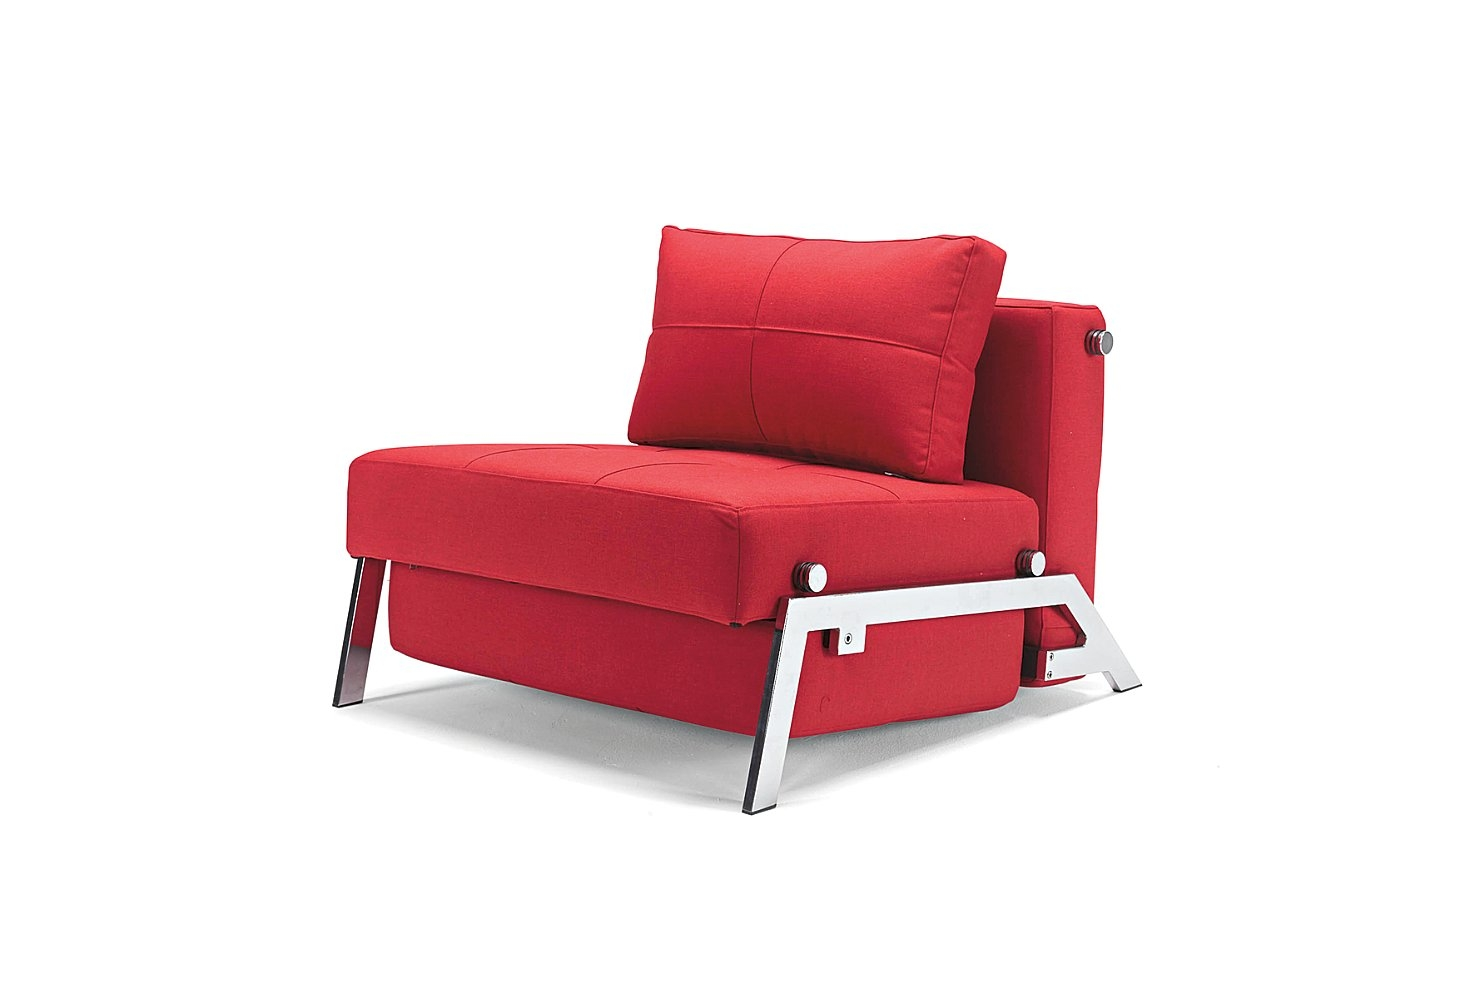 54 Single Sofa Bed Chair About Single Sofa Bed Chair On Pinterest In Sofa Bed Chairs (Image 1 of 15)